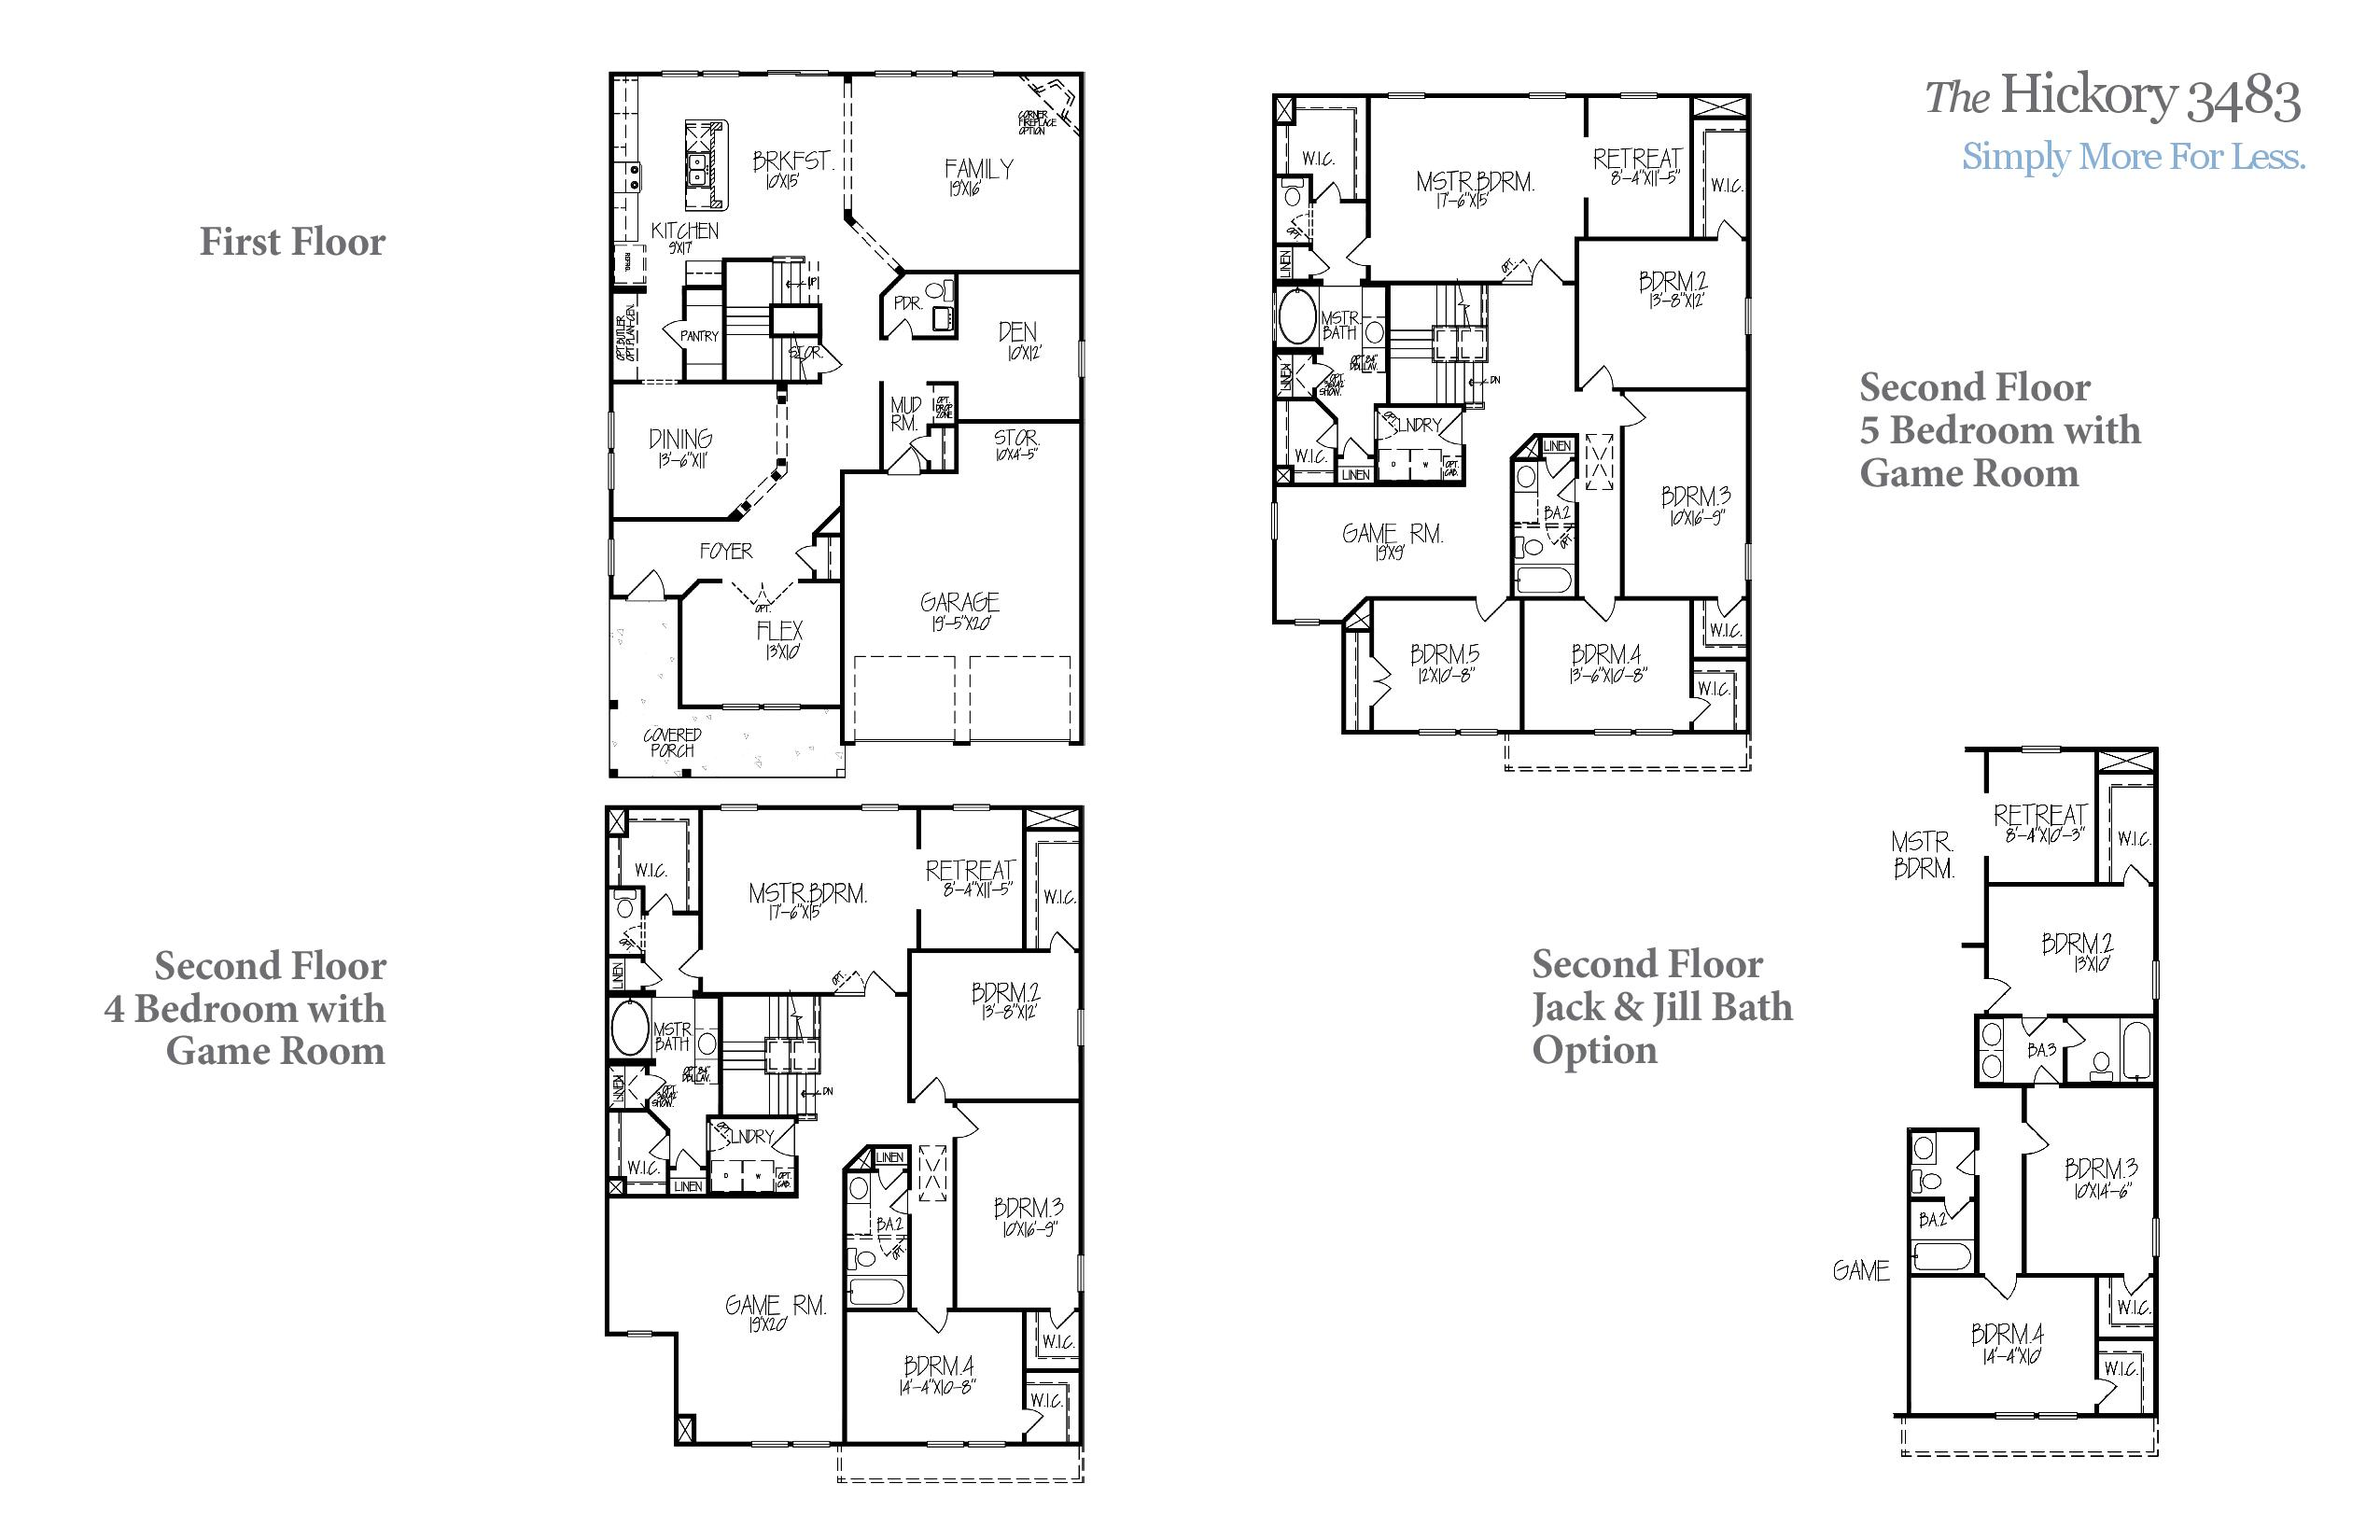 Hickory 3483 Accent Homes Carolinas – Accent Homes Floor Plans